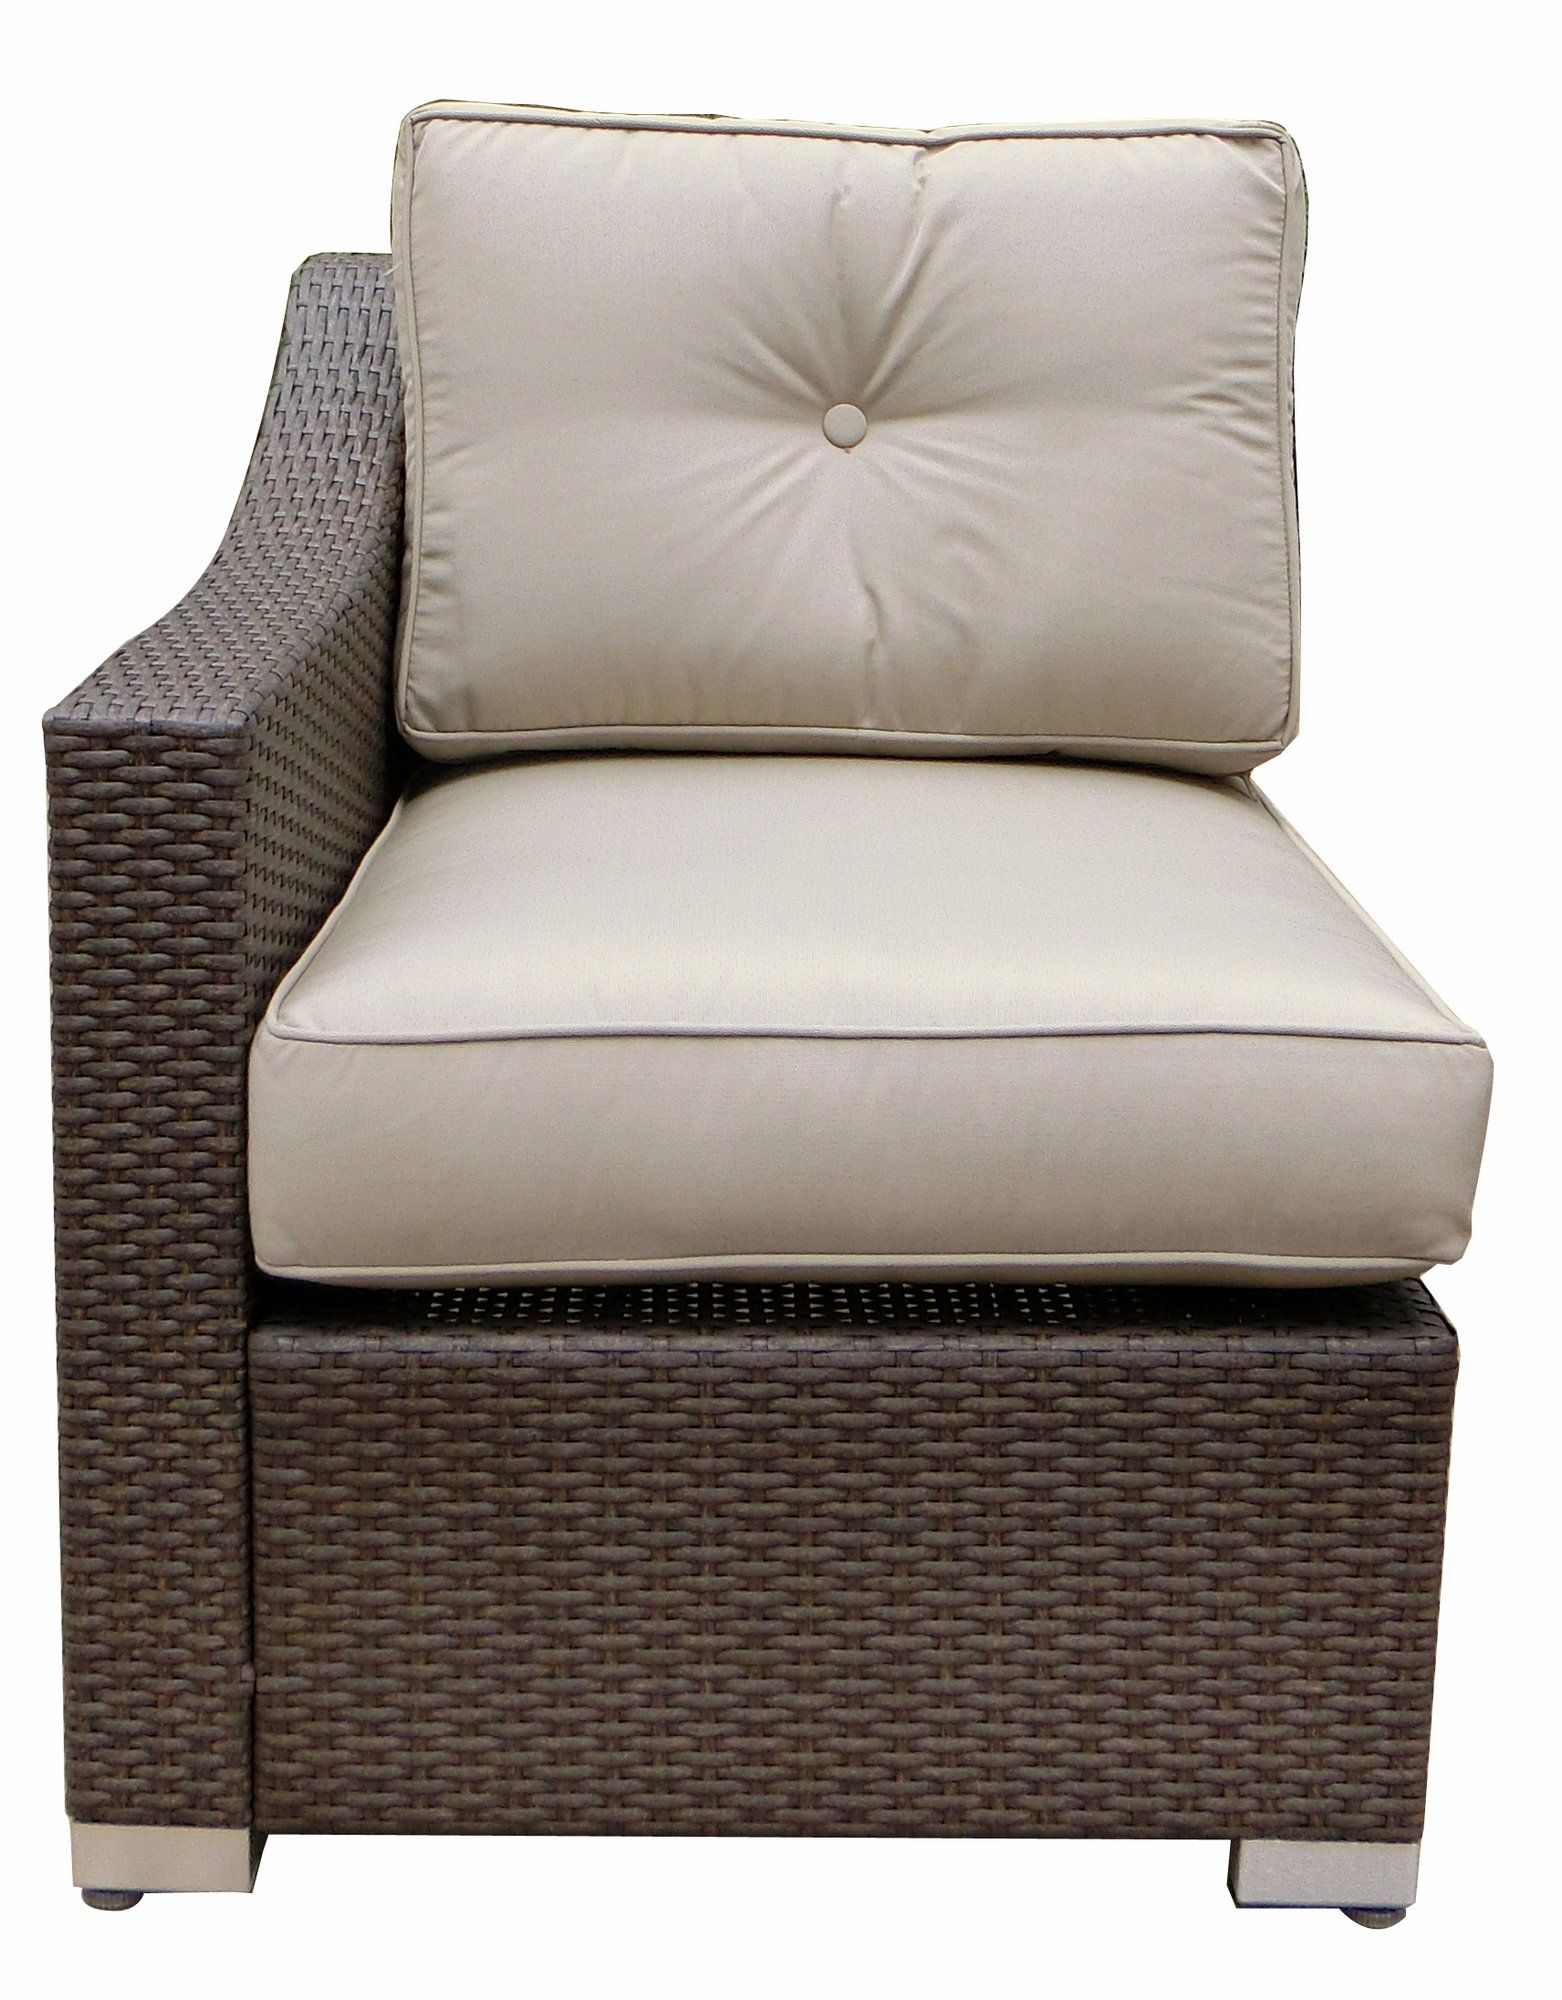 Gillum Outdoor Patio Chair With Cushions Set Of 2 Single Chair